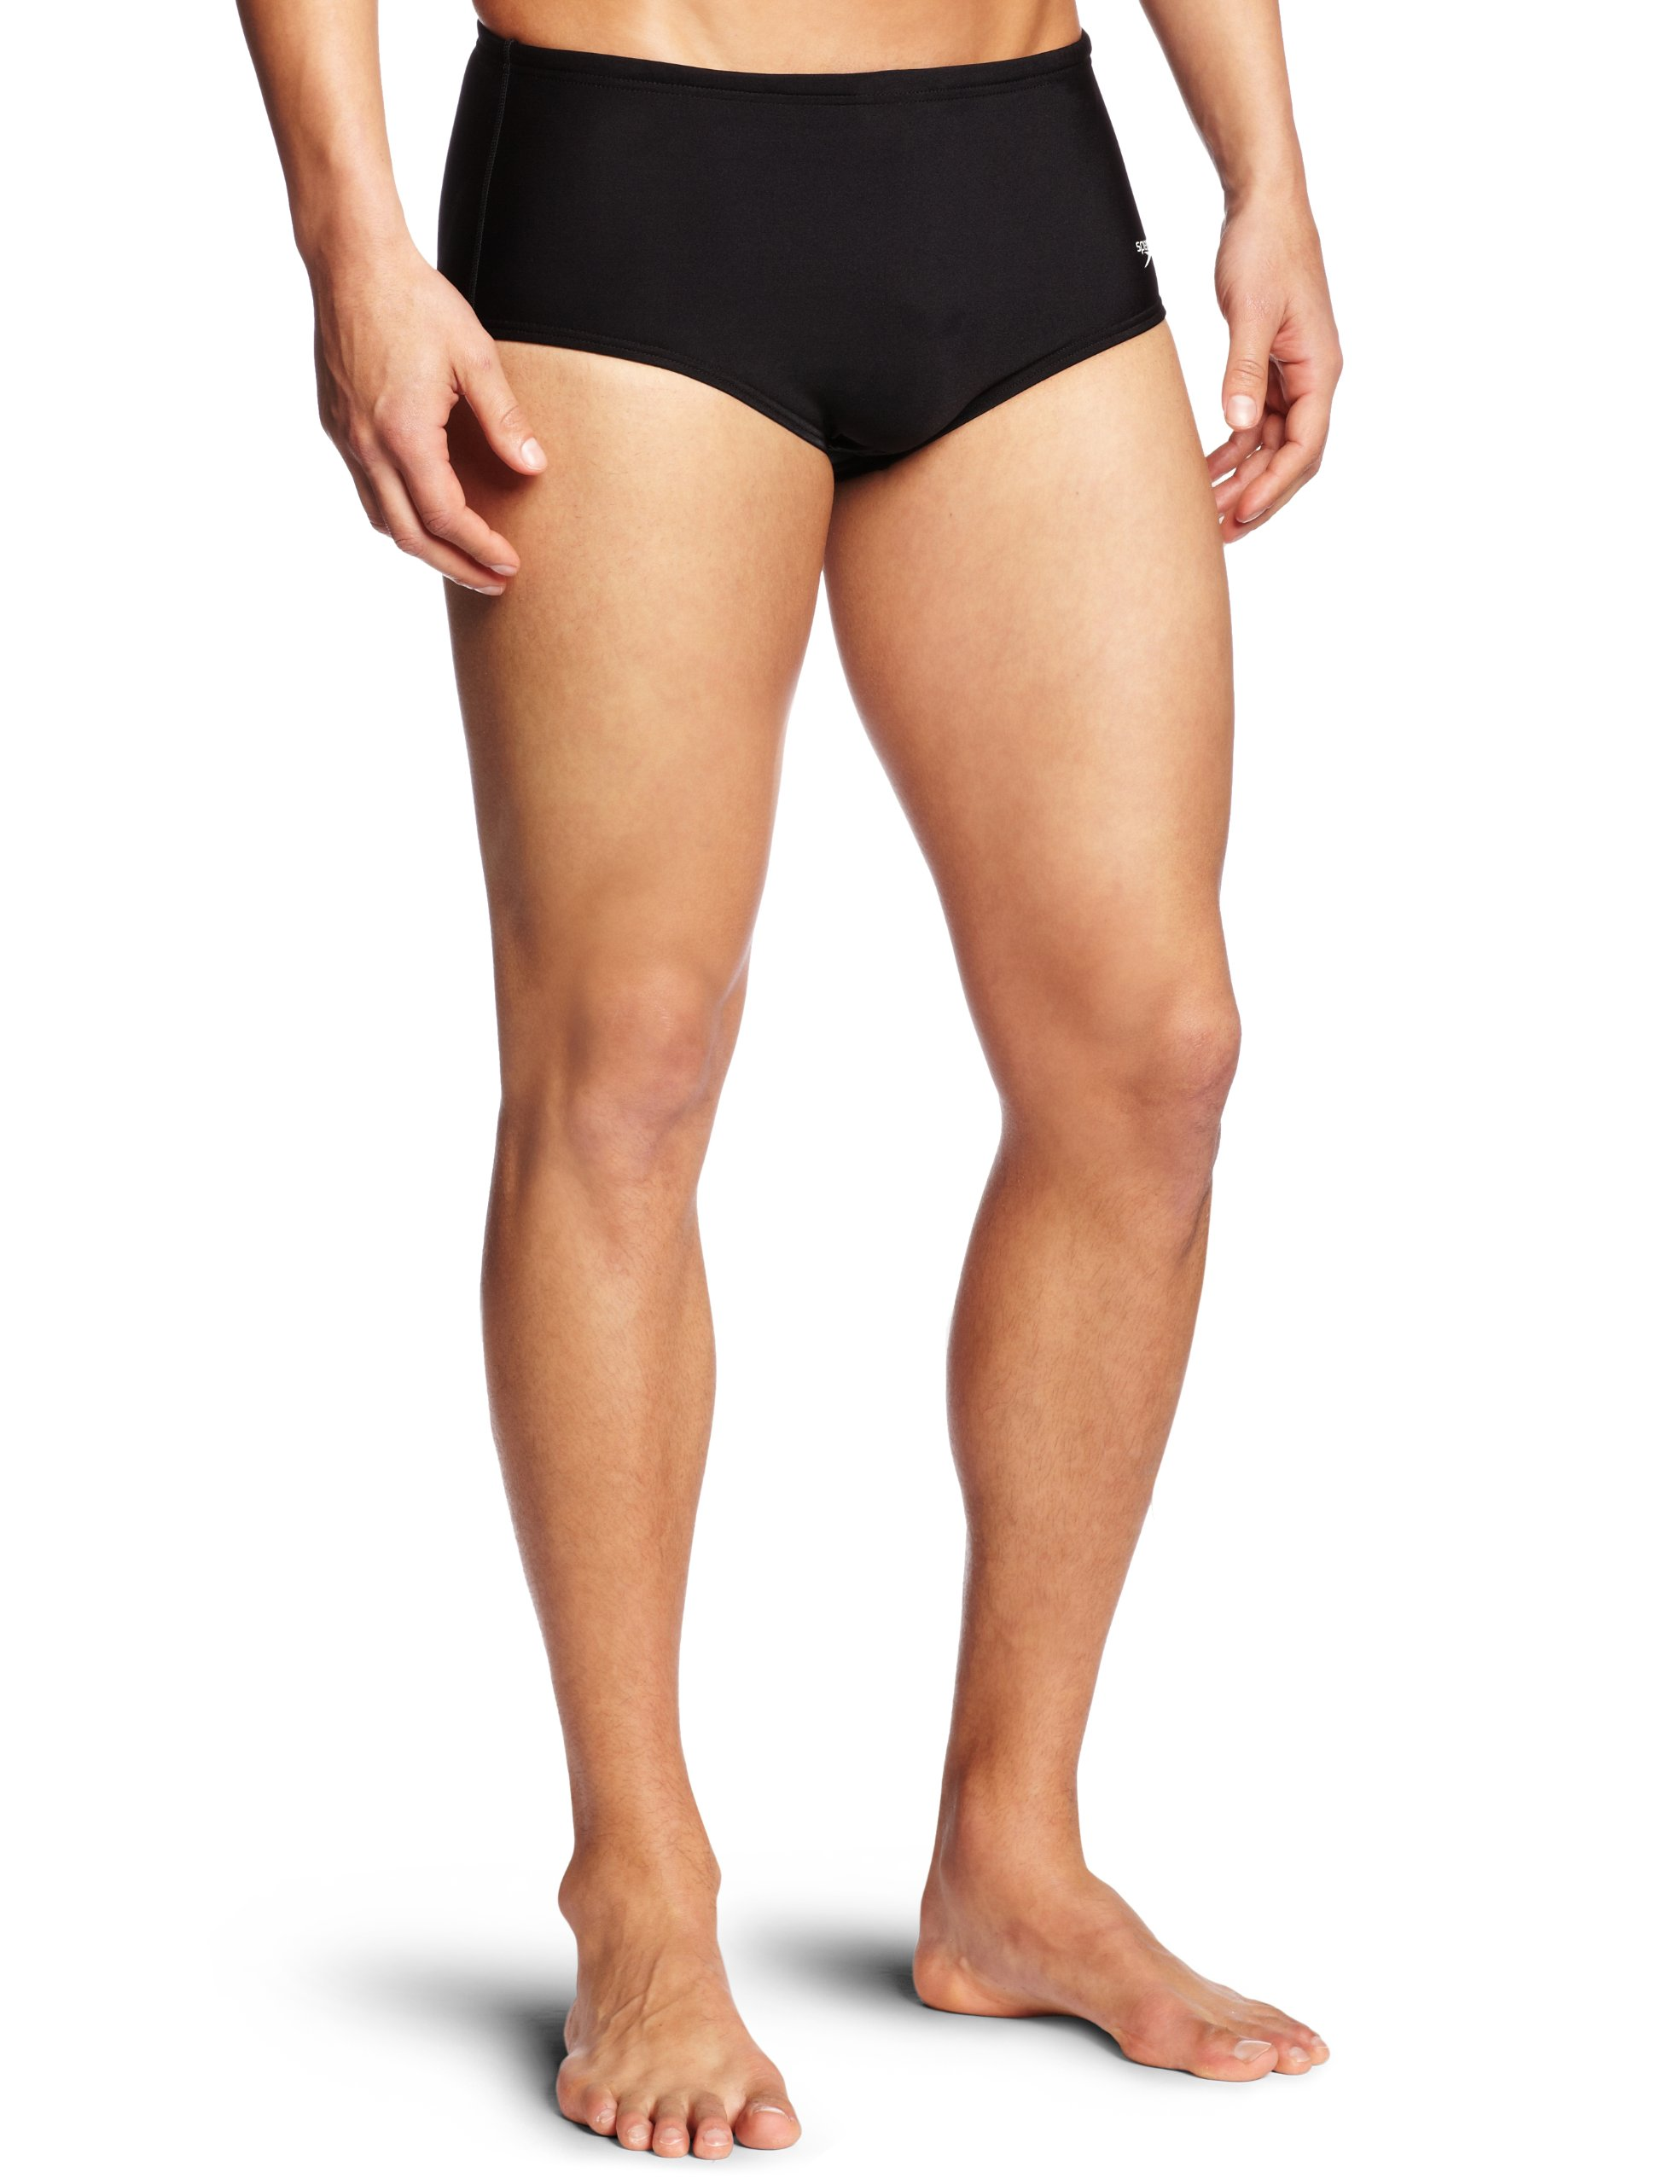 Speedo Men's Endurance Lite Color Block Drag Brief Swimsuit, Black, 34 by Speedo